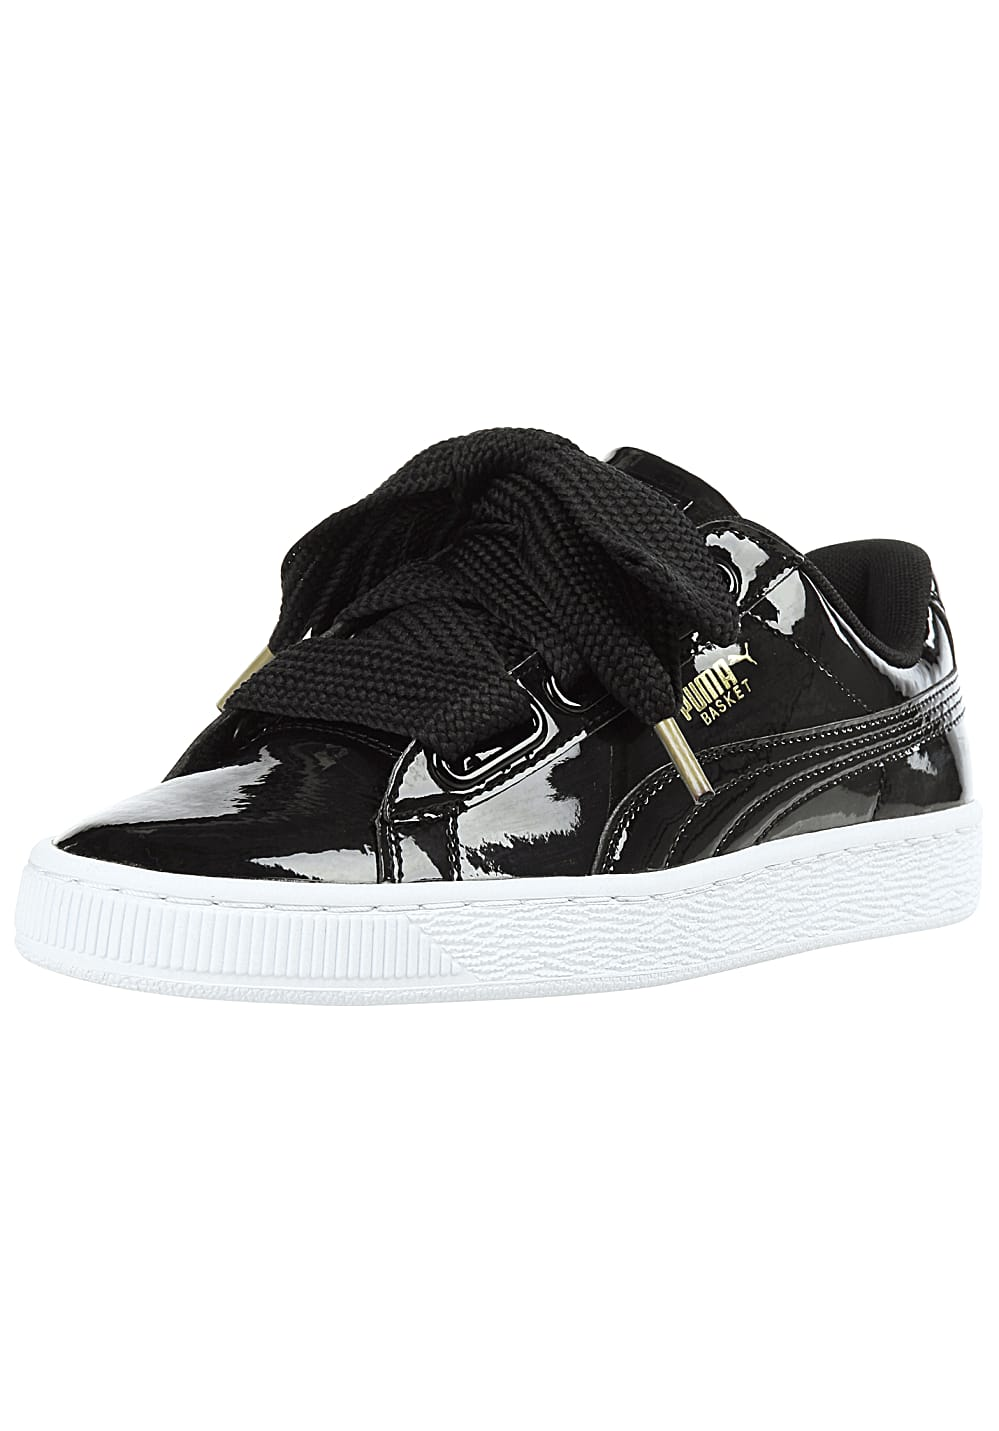 Puma Basket Heart Patent - Sneakers for Women - Black - Planet Sports 009ee4cf3b